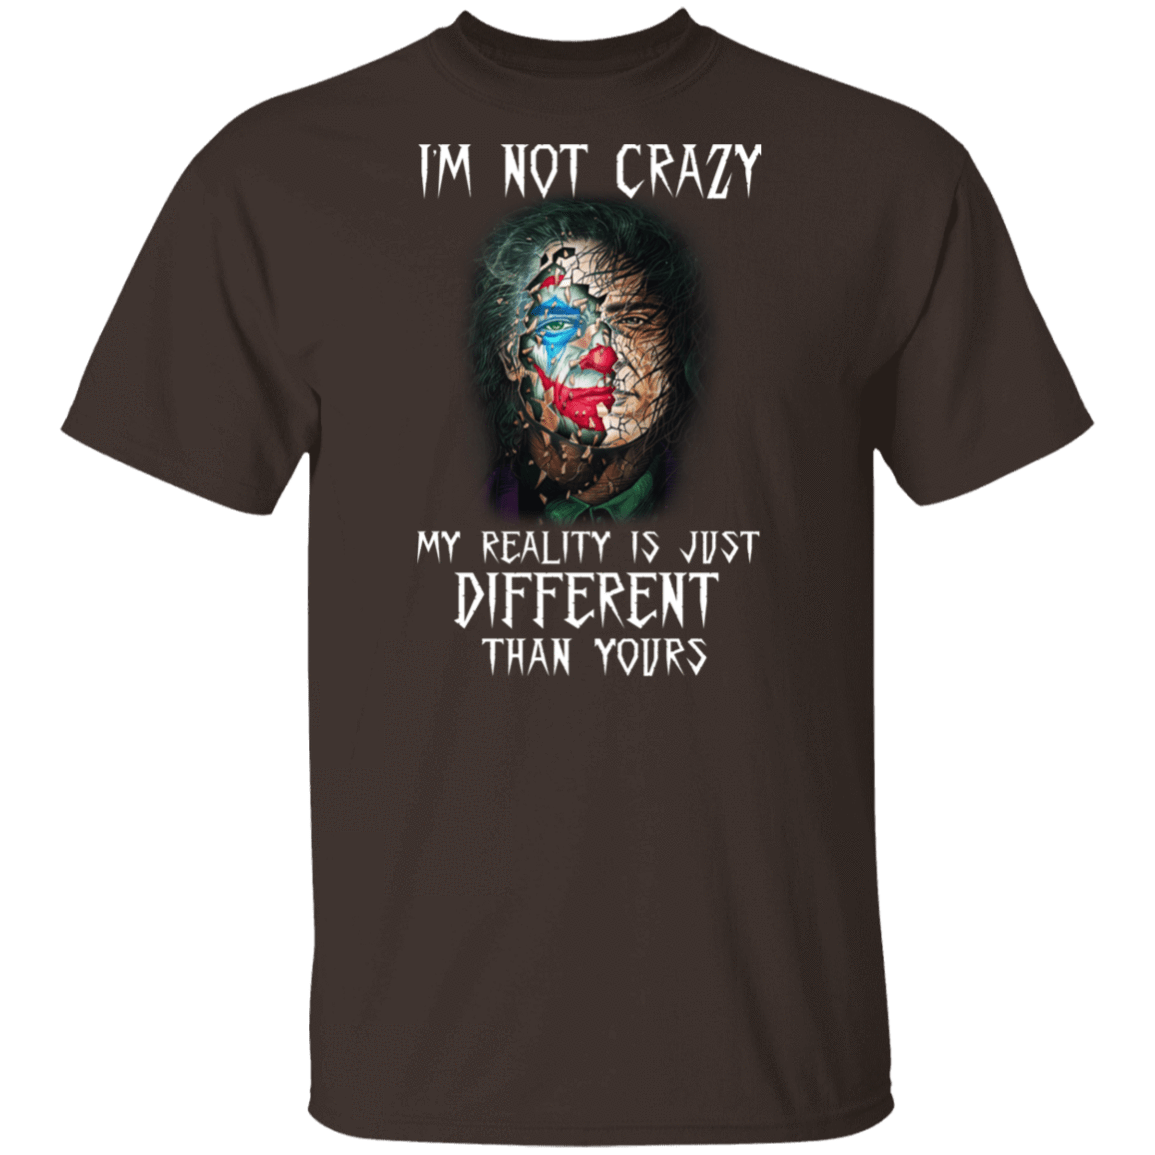 I'm Not Crazy My Reality Is Just Different Than Yours  T-Shirts, Hoodies, Tank 1049-9956-80563060-48152 - Tee Ript